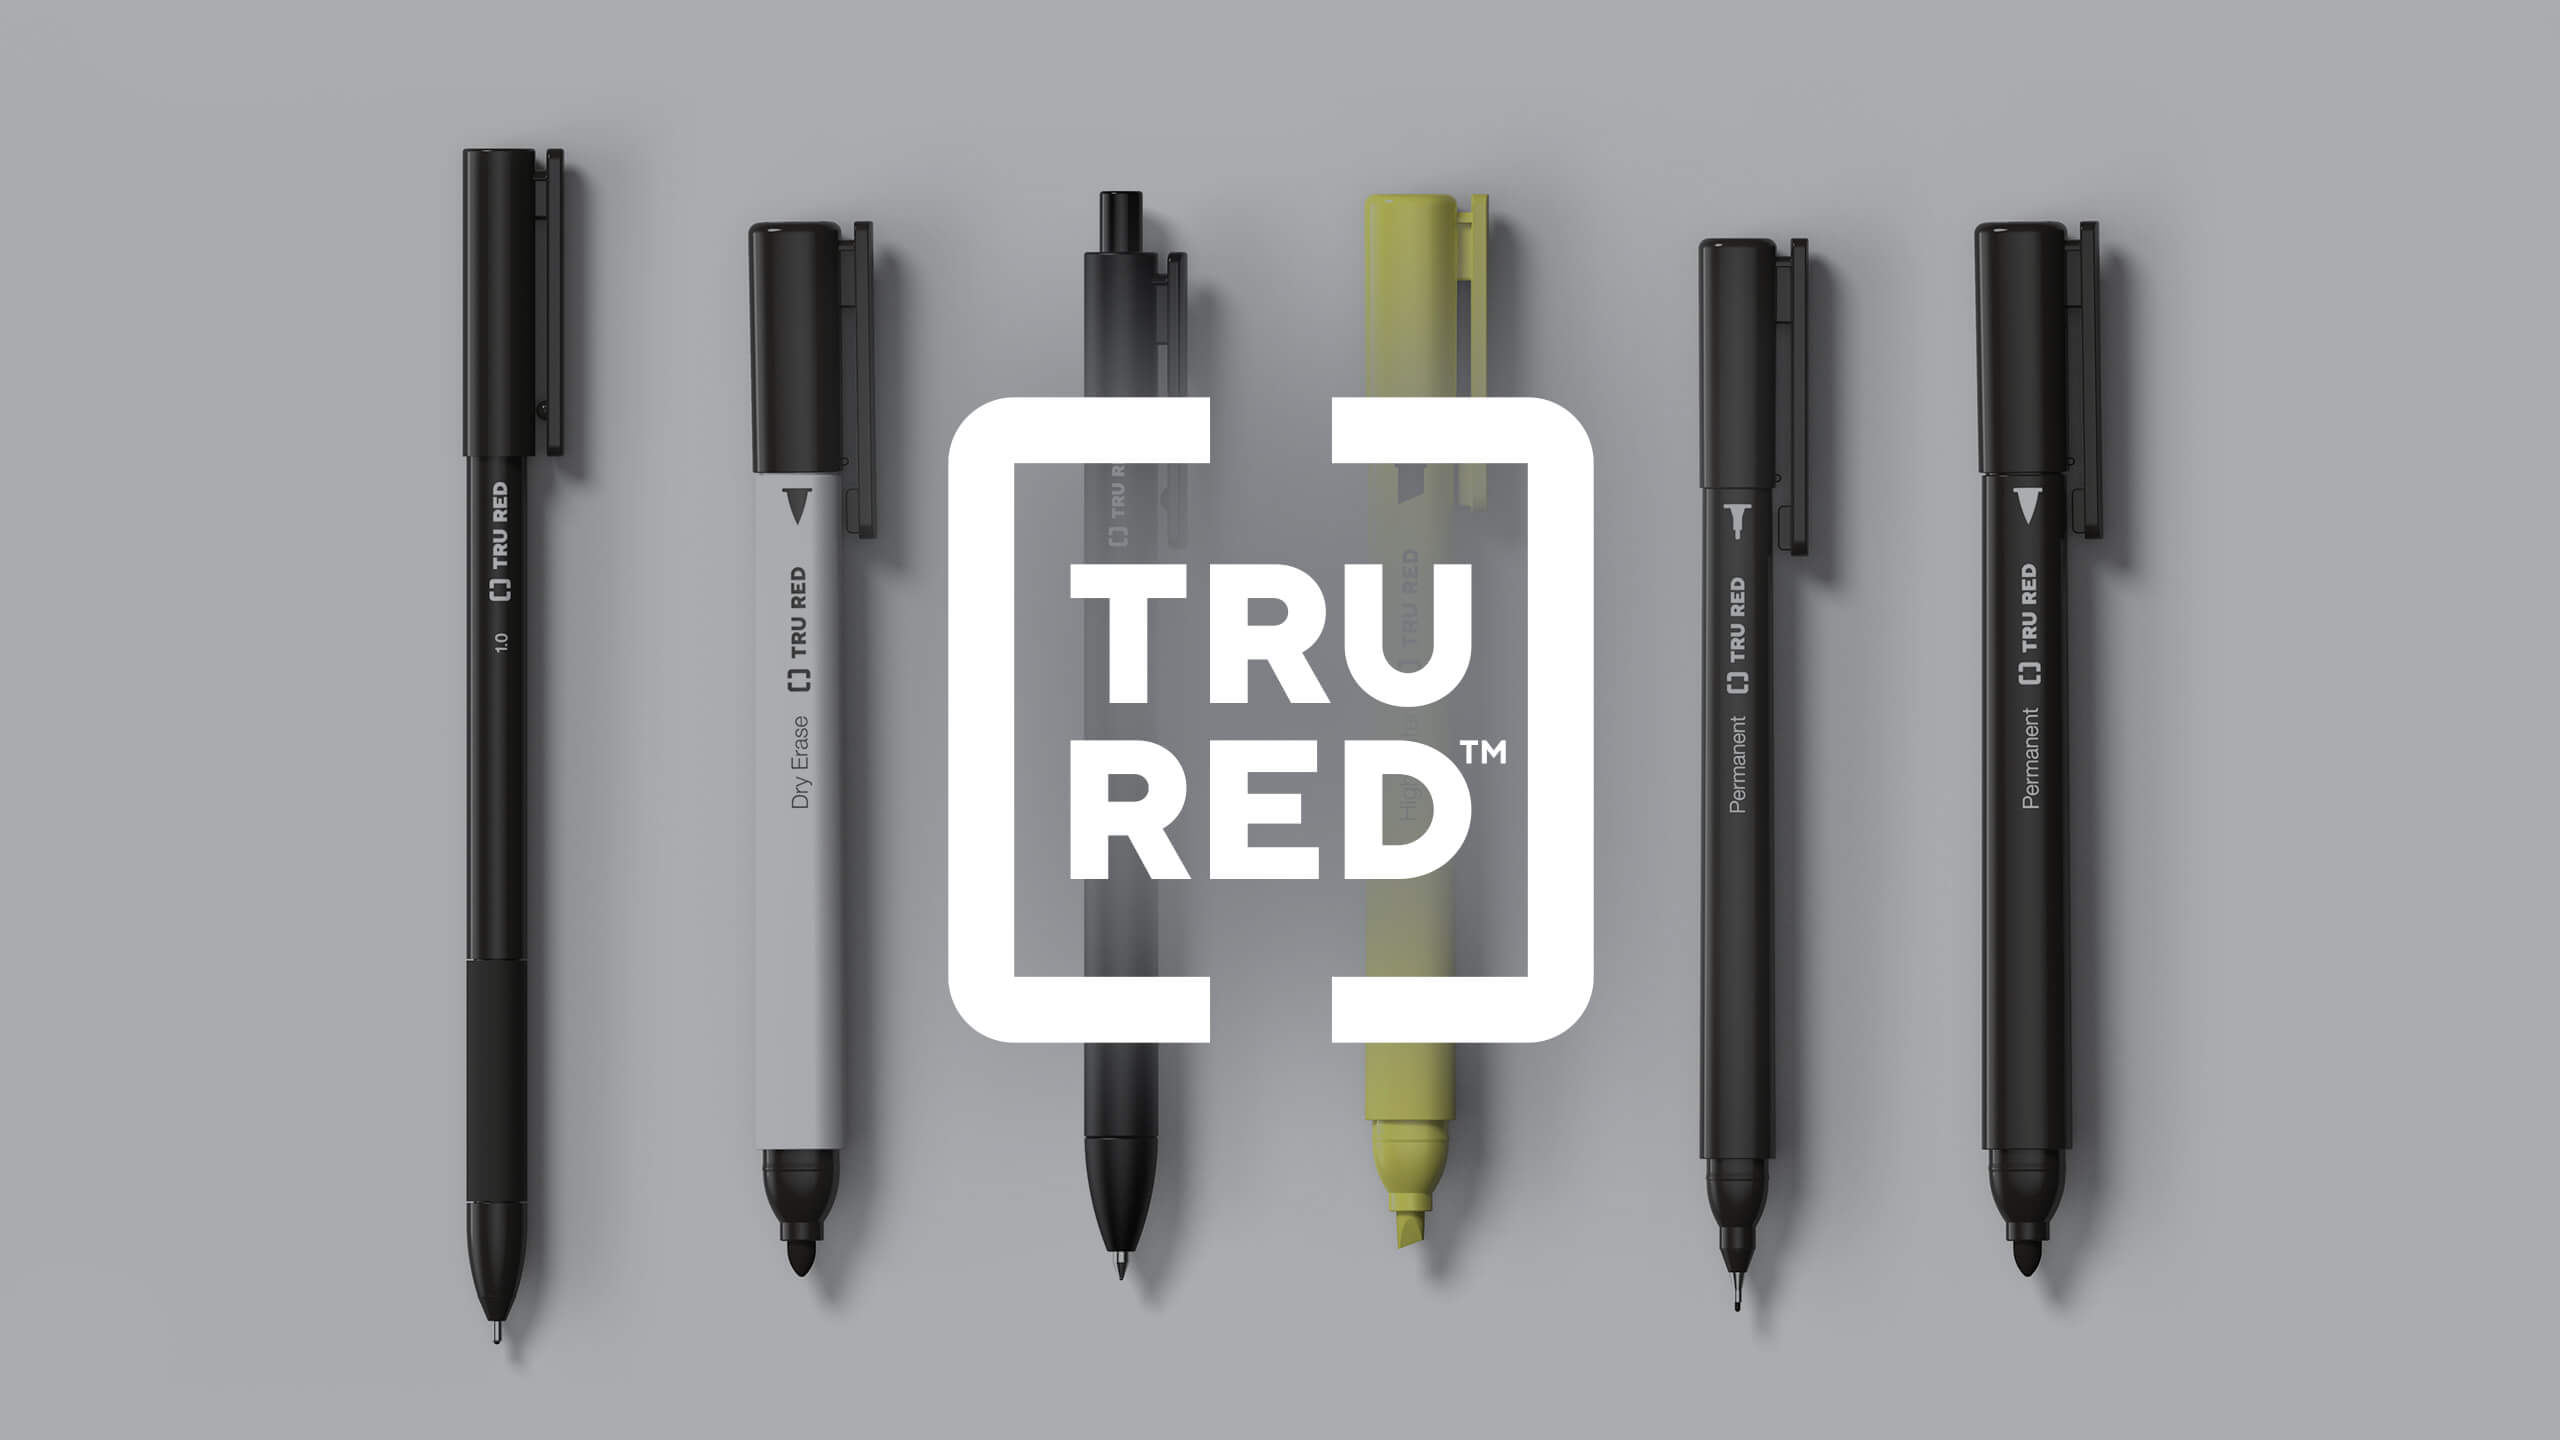 White Tru Red logo on top of a 3D CAD Render of pens, markers, and highlighters by Sprout Studios